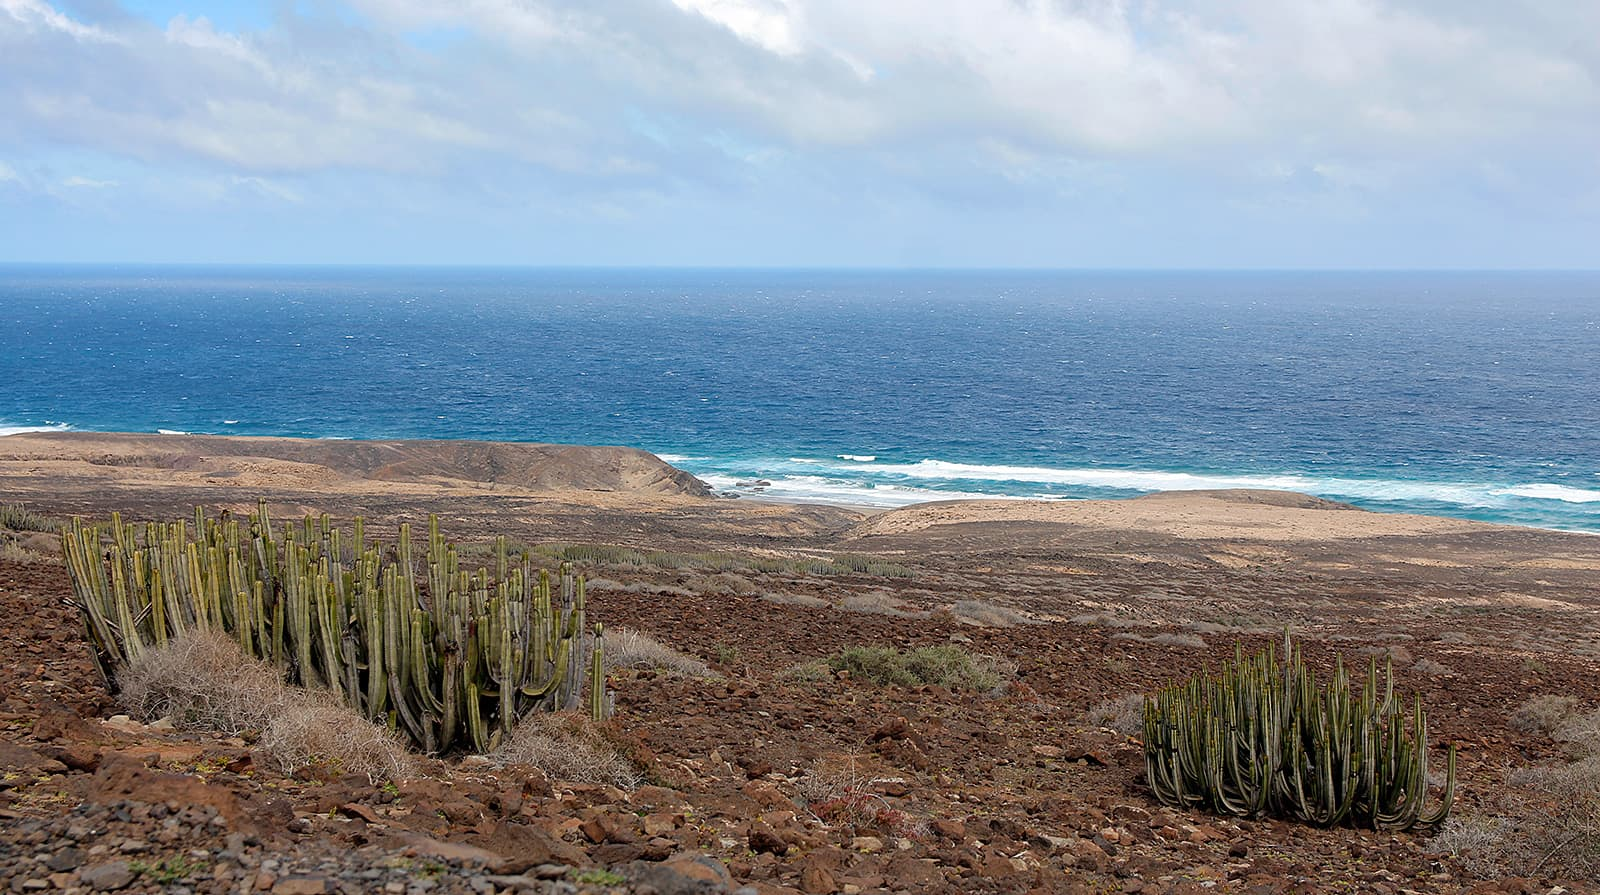 Driving to the south tip of Fuerteventura and then turning right will bring you to Cofete. Apart from a nice view from the pass above Cofete, the beach is pretty boring.